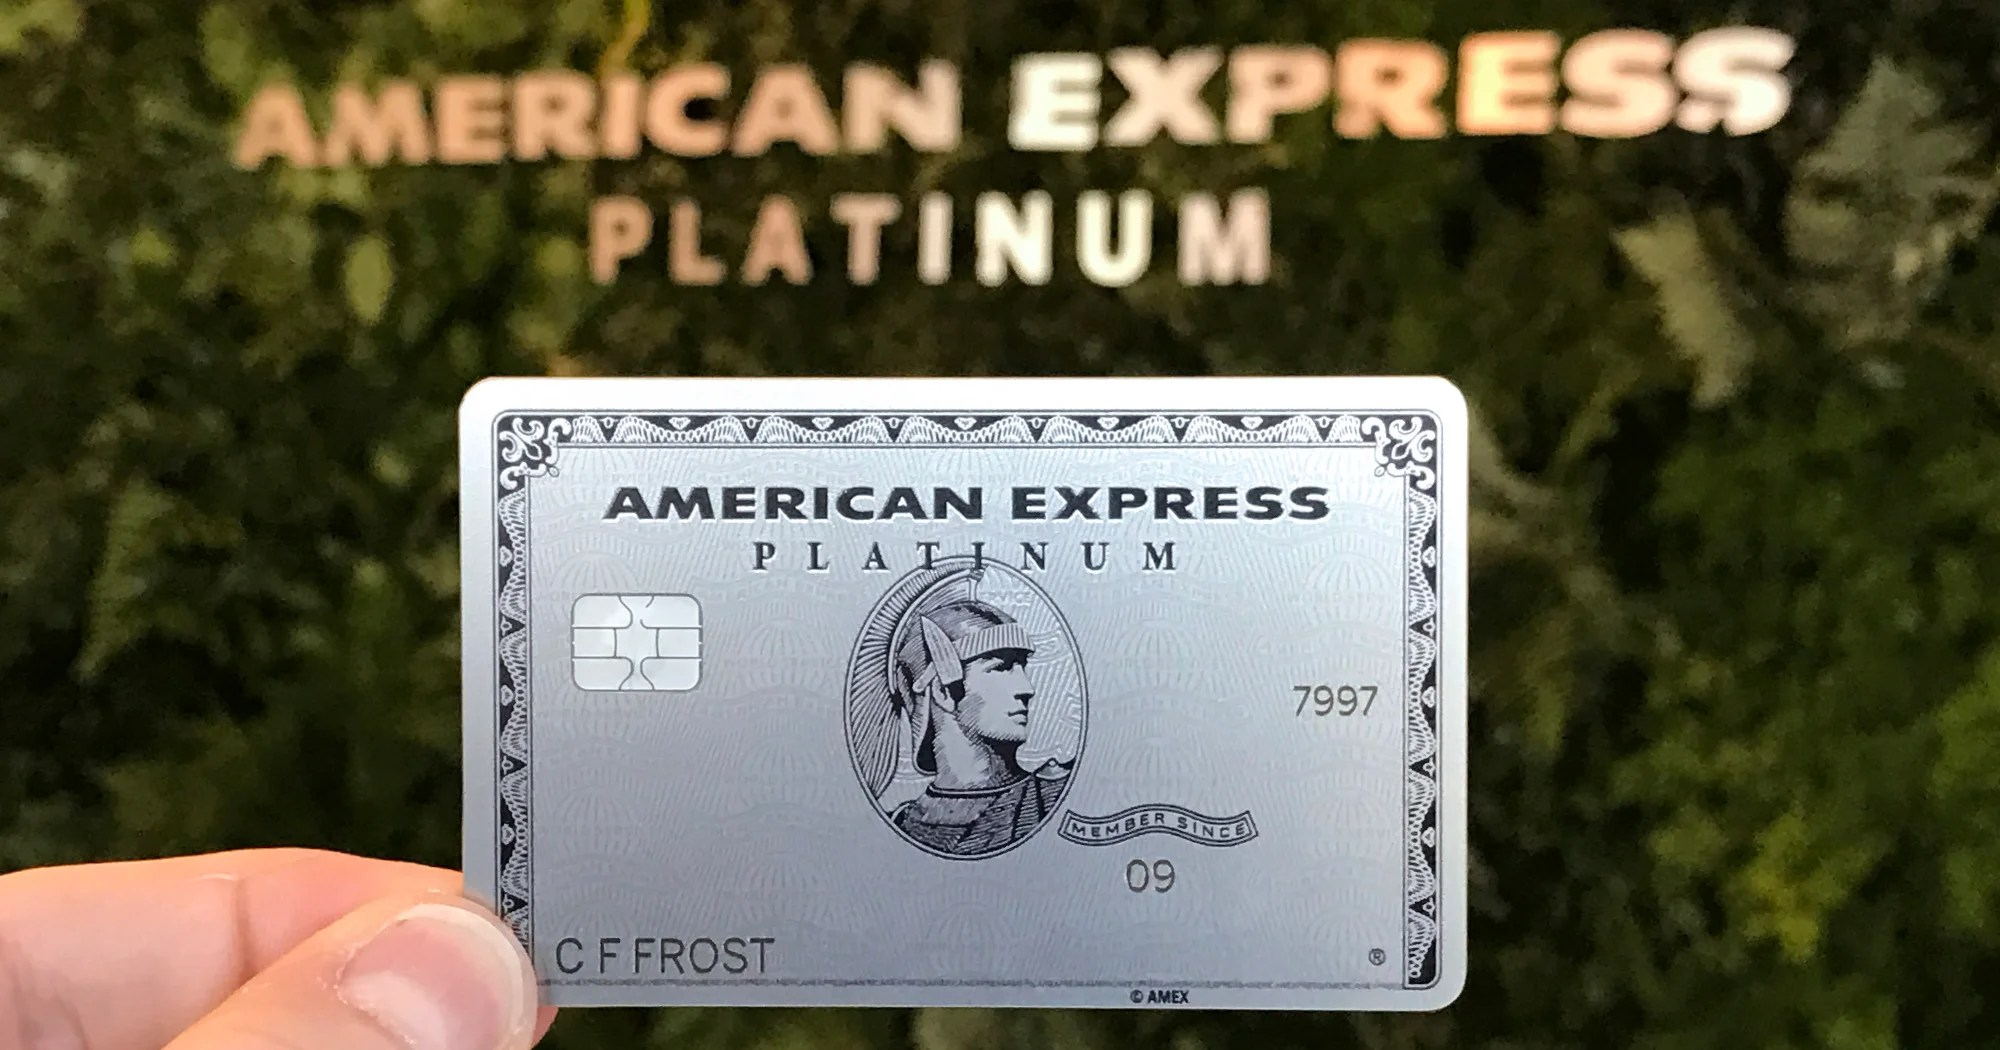 Order Your Metal Amex Platinum line in Less Than 5 Minutes